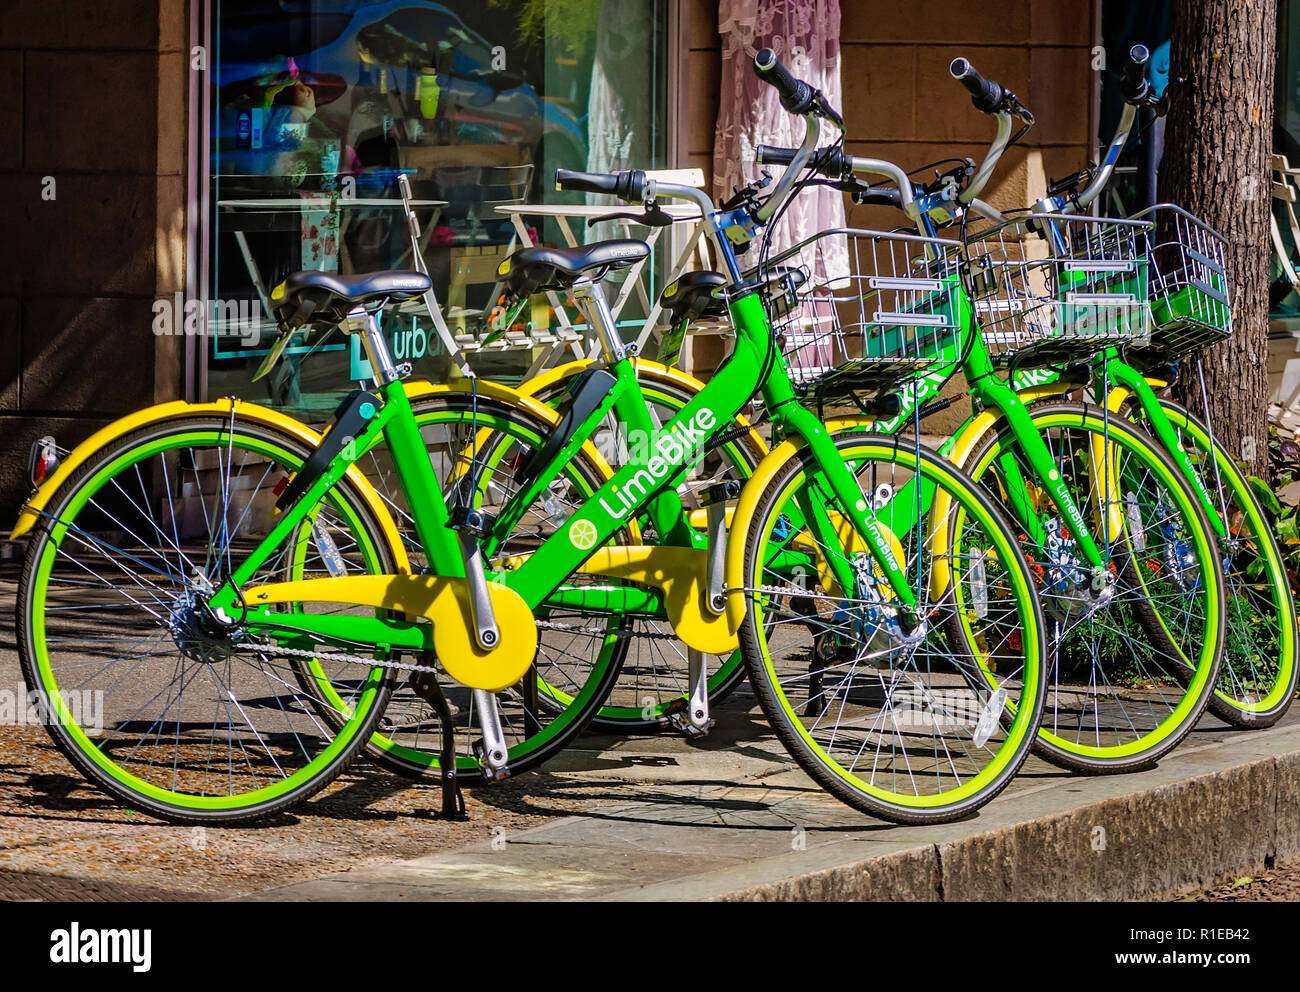 A row of LimeBikes, a bike-sharing service, is parked against a shop on Dauphin Street, Nov. 3, 2018, in Mobile, Alabama. Stock Photo